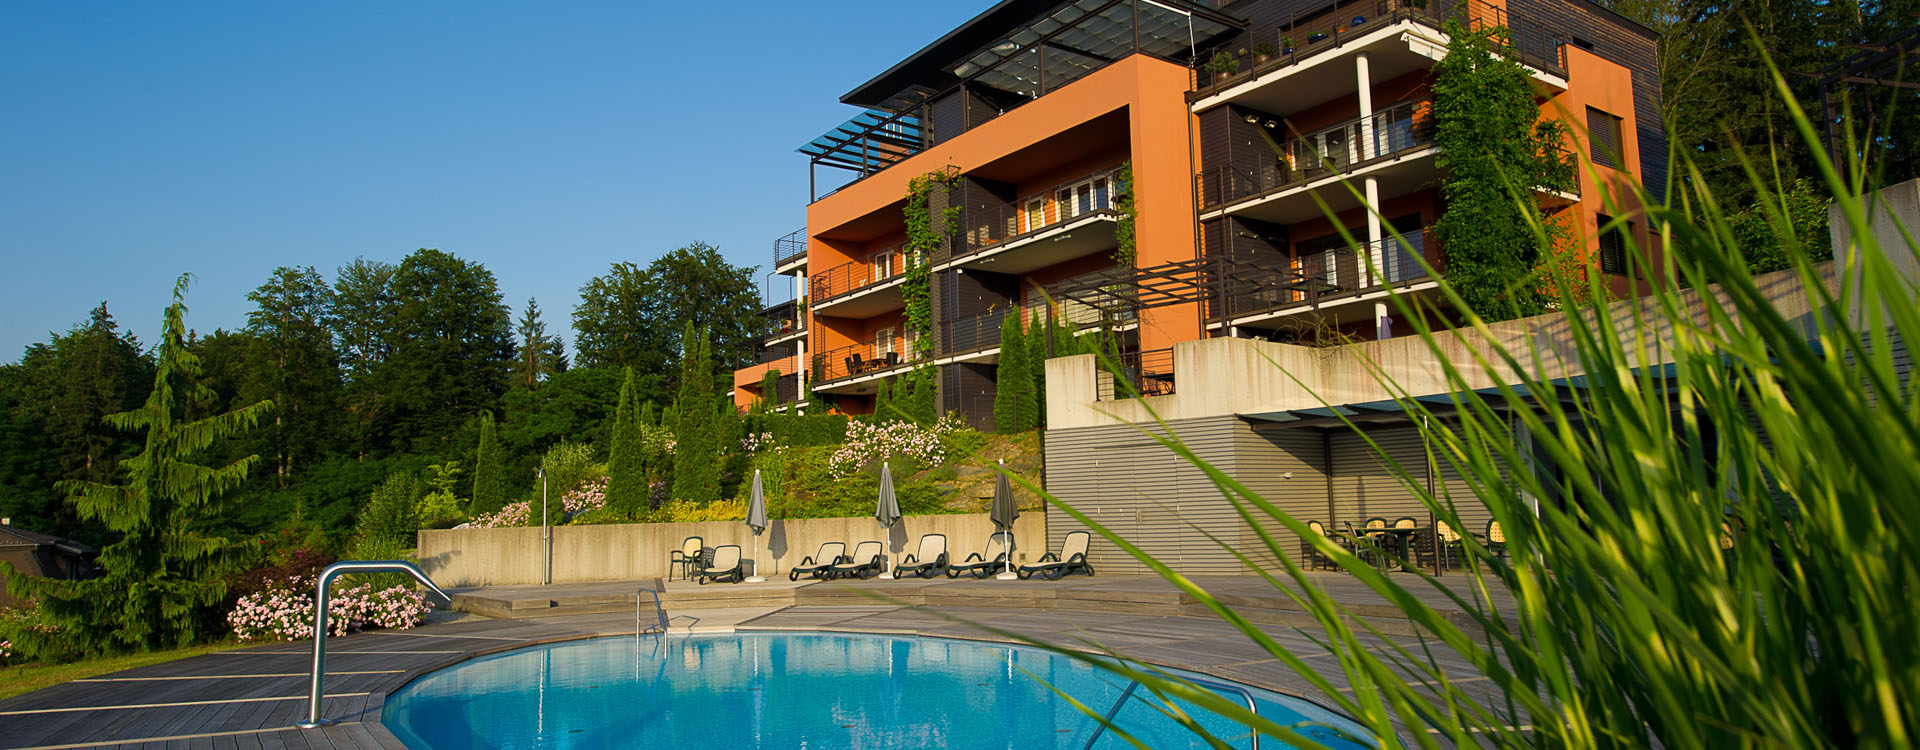 Outdoor-Pool der Parvillen Velden.